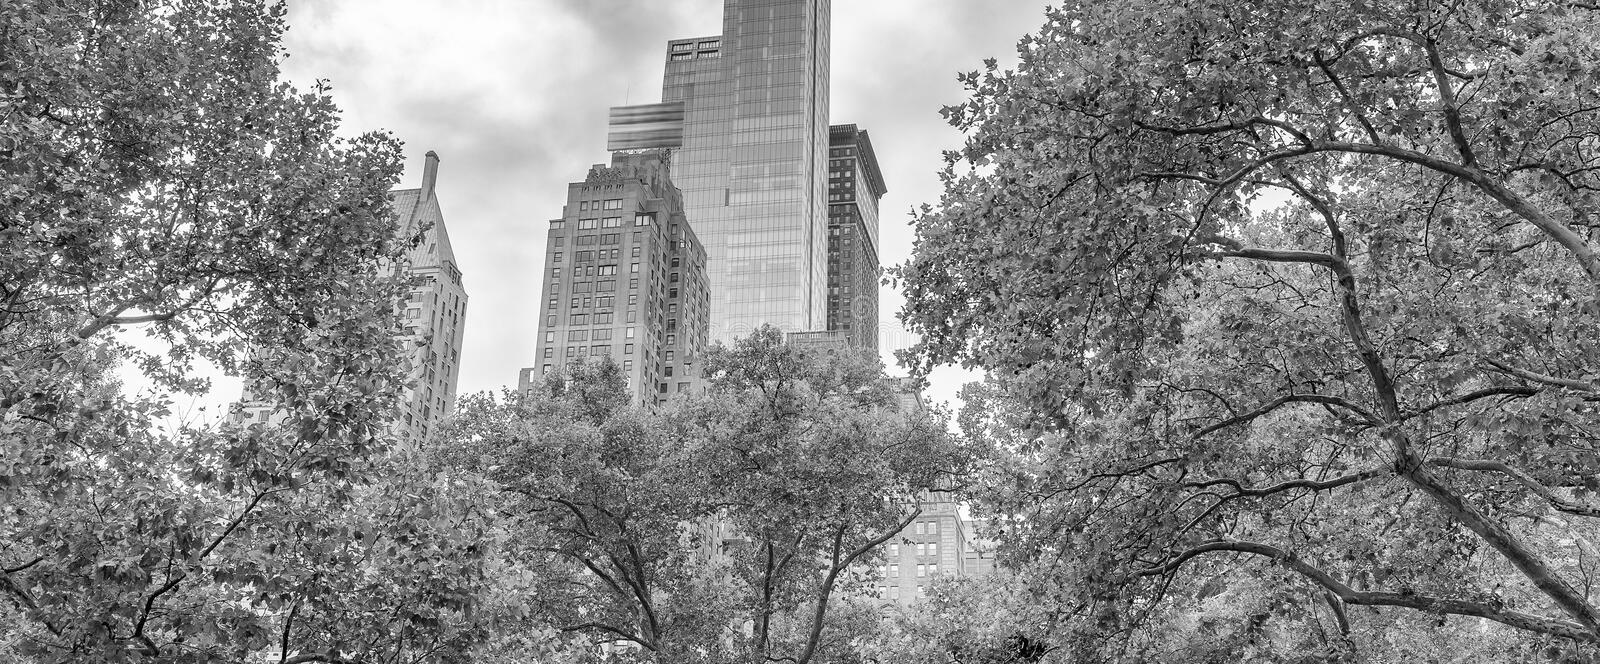 Skyscrapers and trees in Central Park, New York City royalty free stock photography